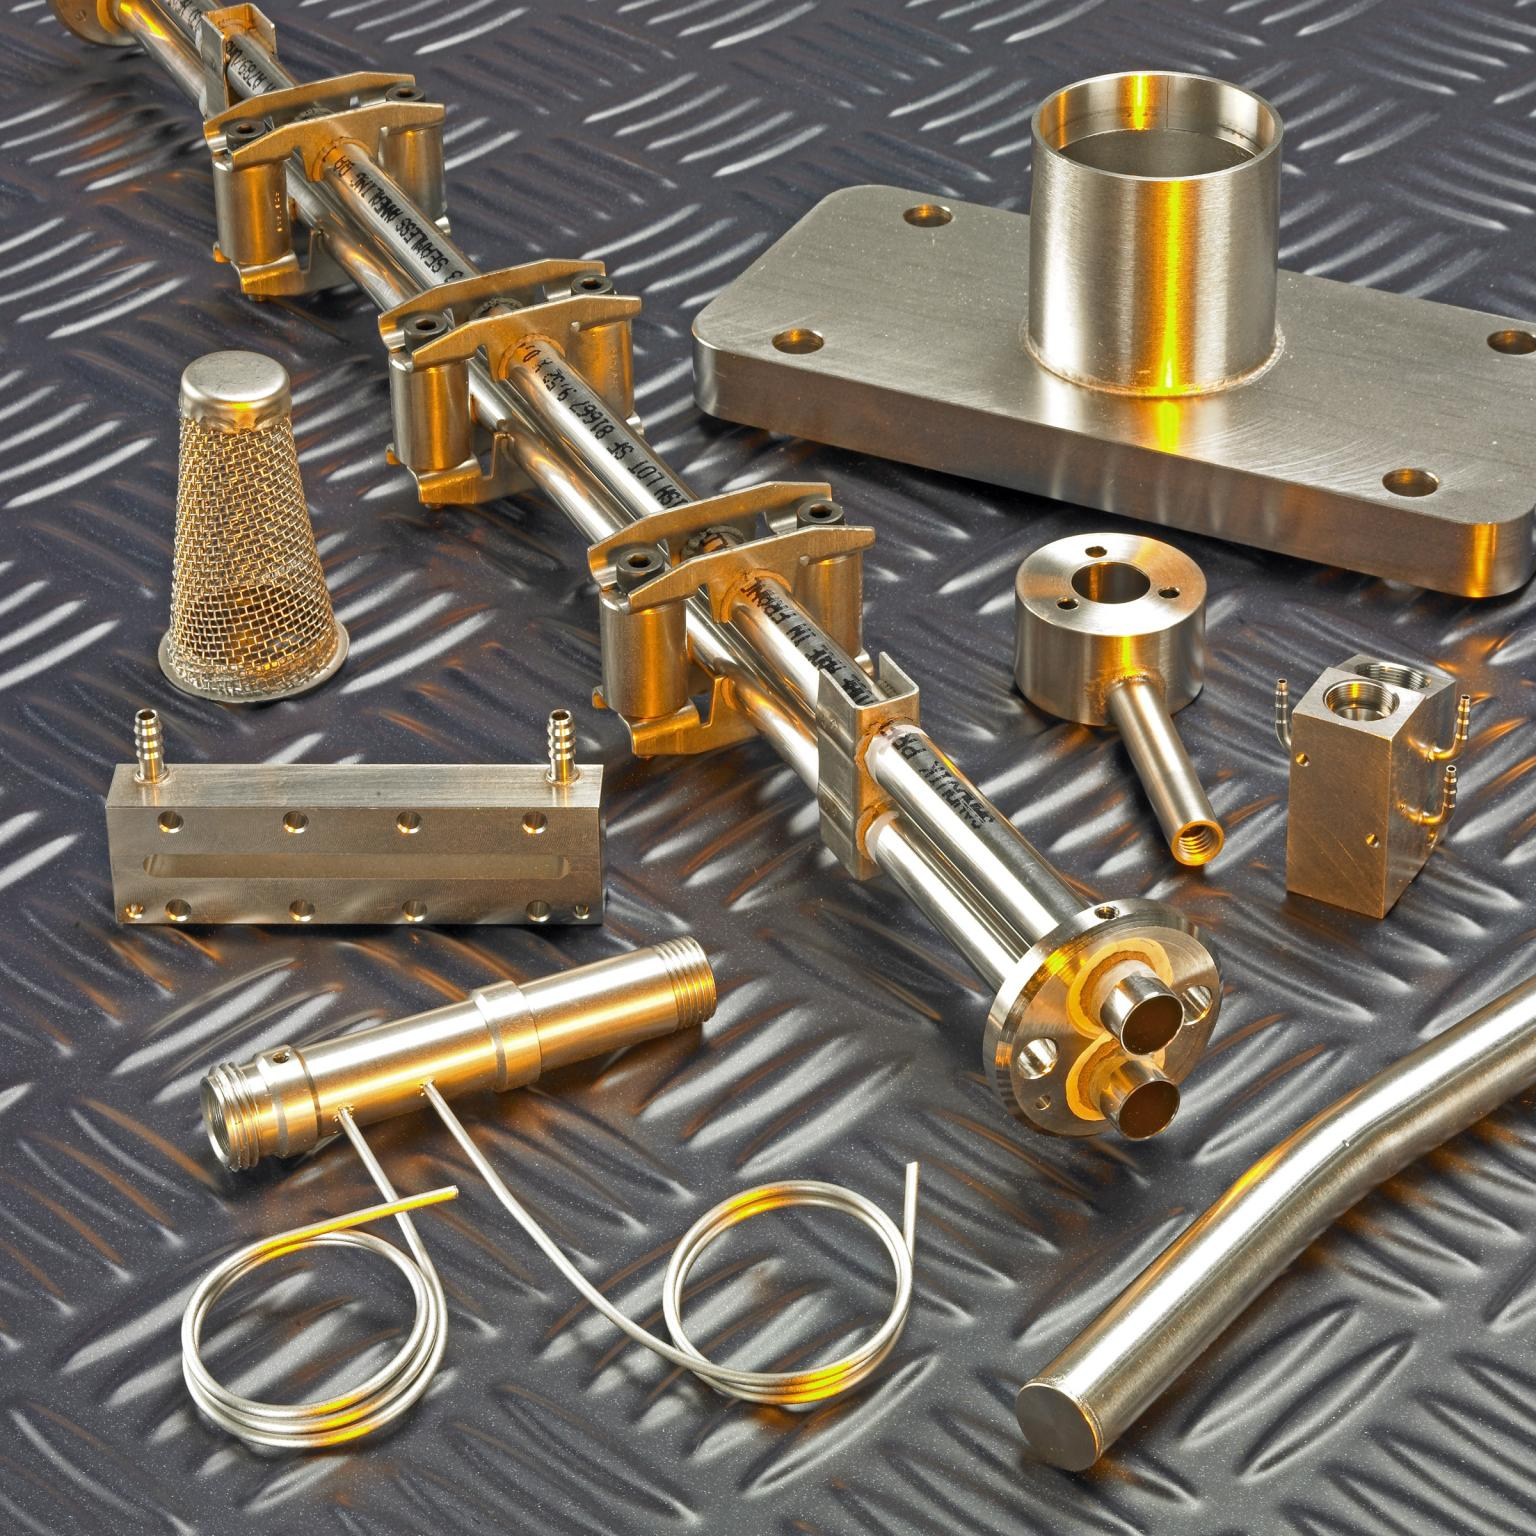 Vaccum brazing enables the creation of complex components that are used in a wide range of applications across different industries